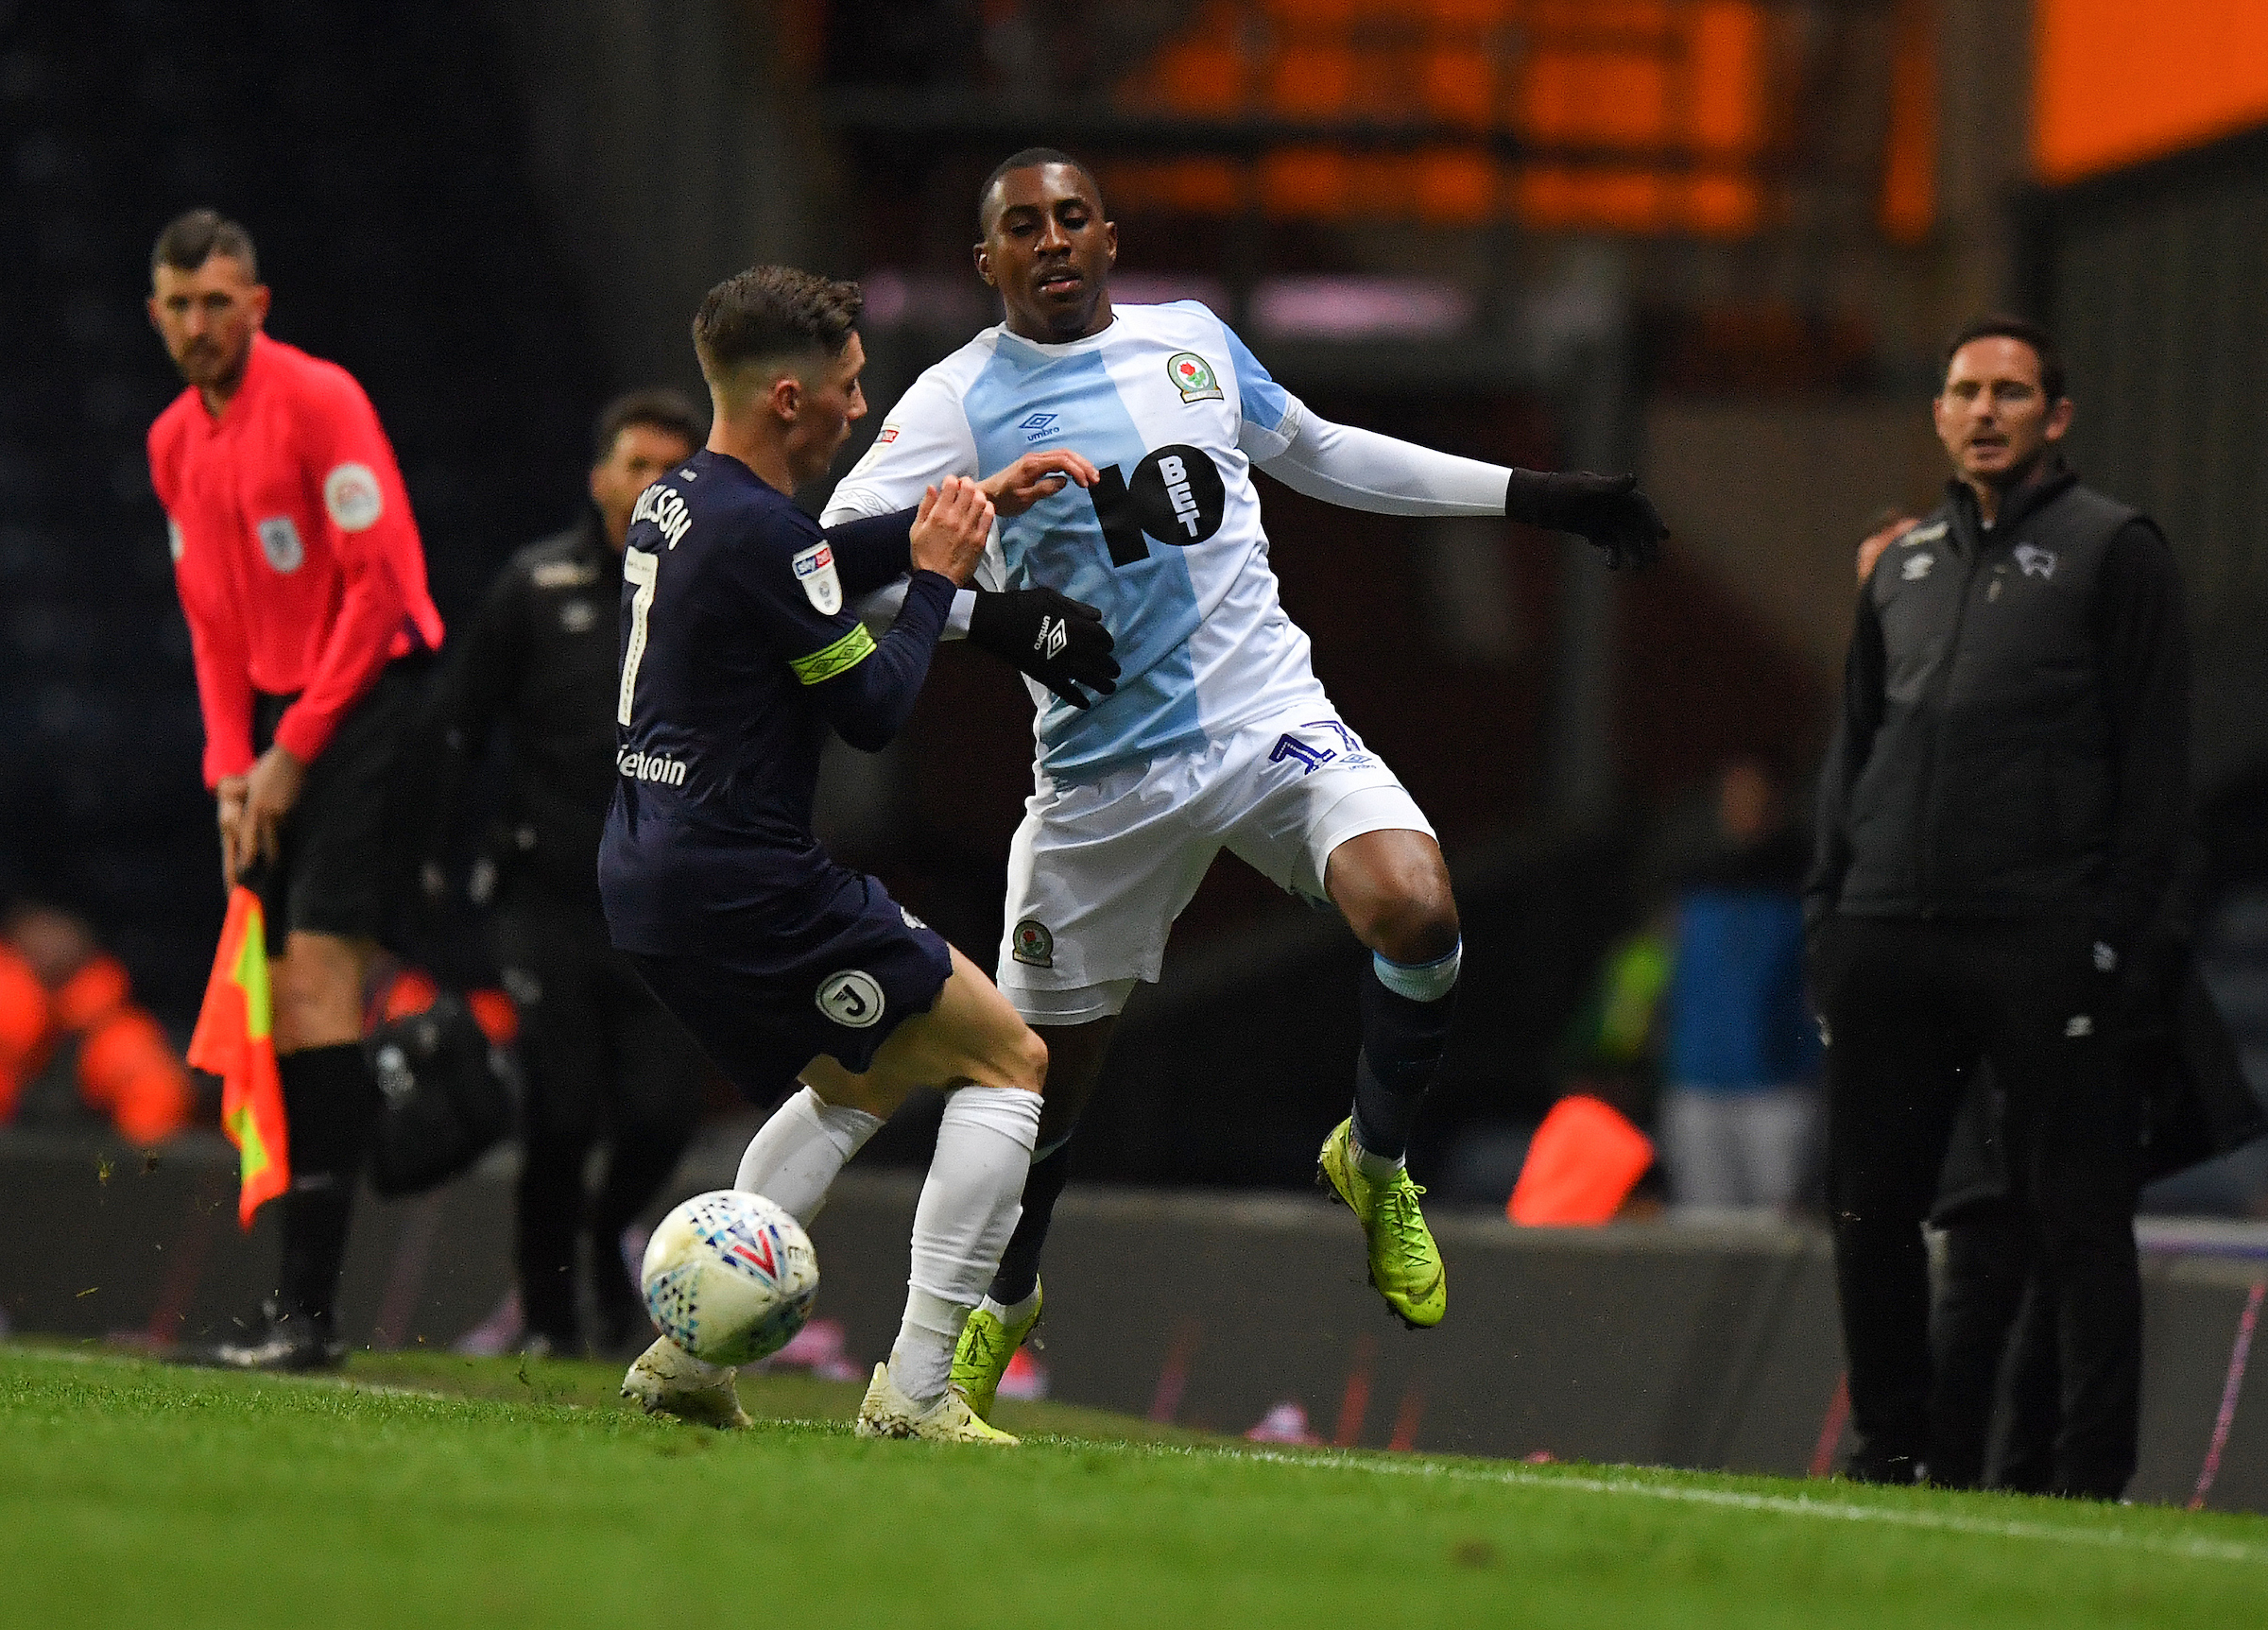 Amari'i Bell has started 30 of Rovers' 41 Championship matches so far this season